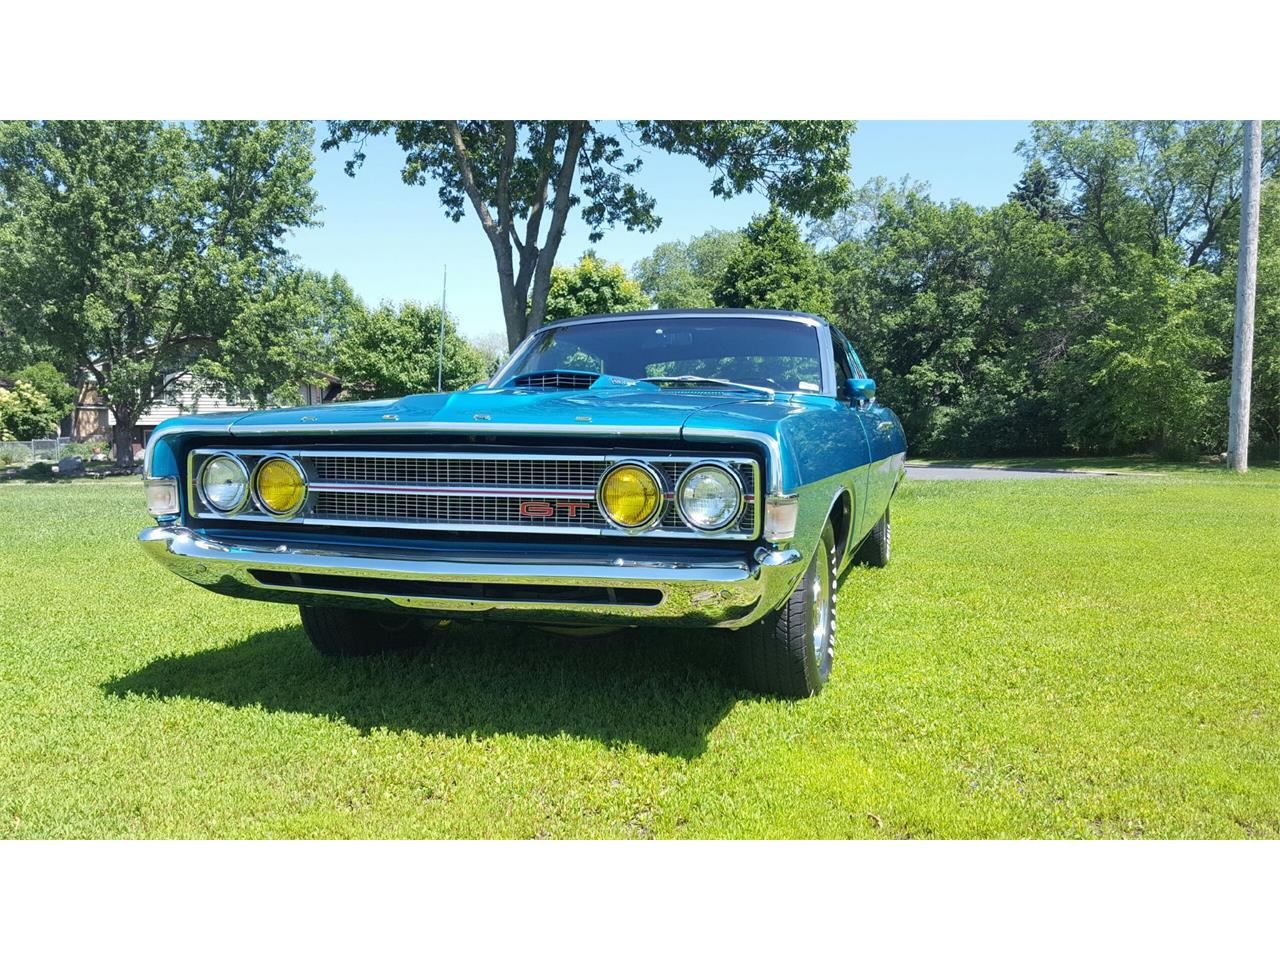 Large Picture of 1969 Ford Torino located in Annandale Minnesota Auction Vehicle - L8I4